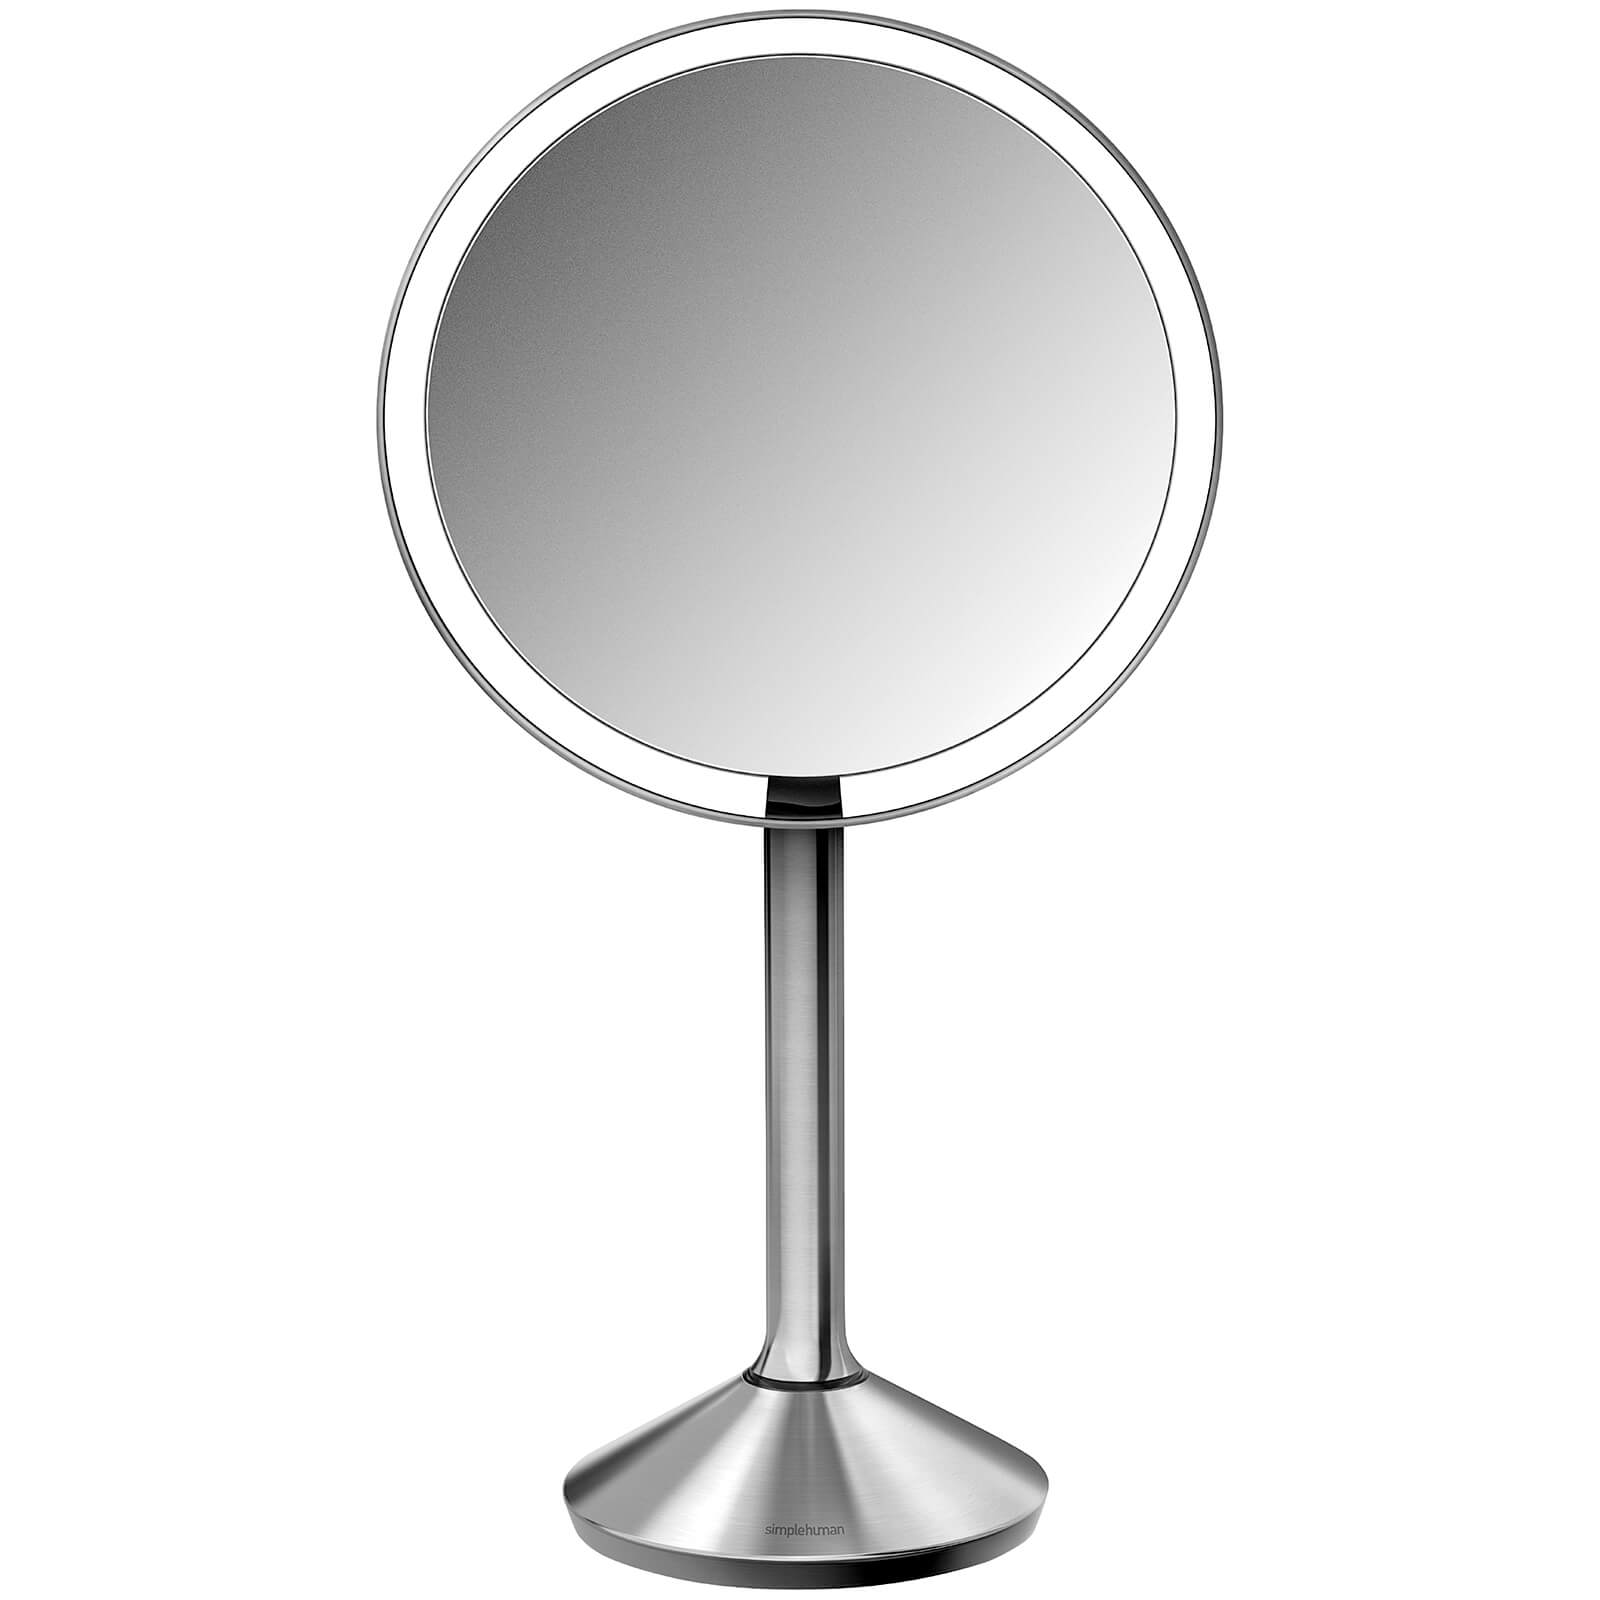 simplehuman Stainless Steel Rechargeable Sensor Mirror 16.5cm